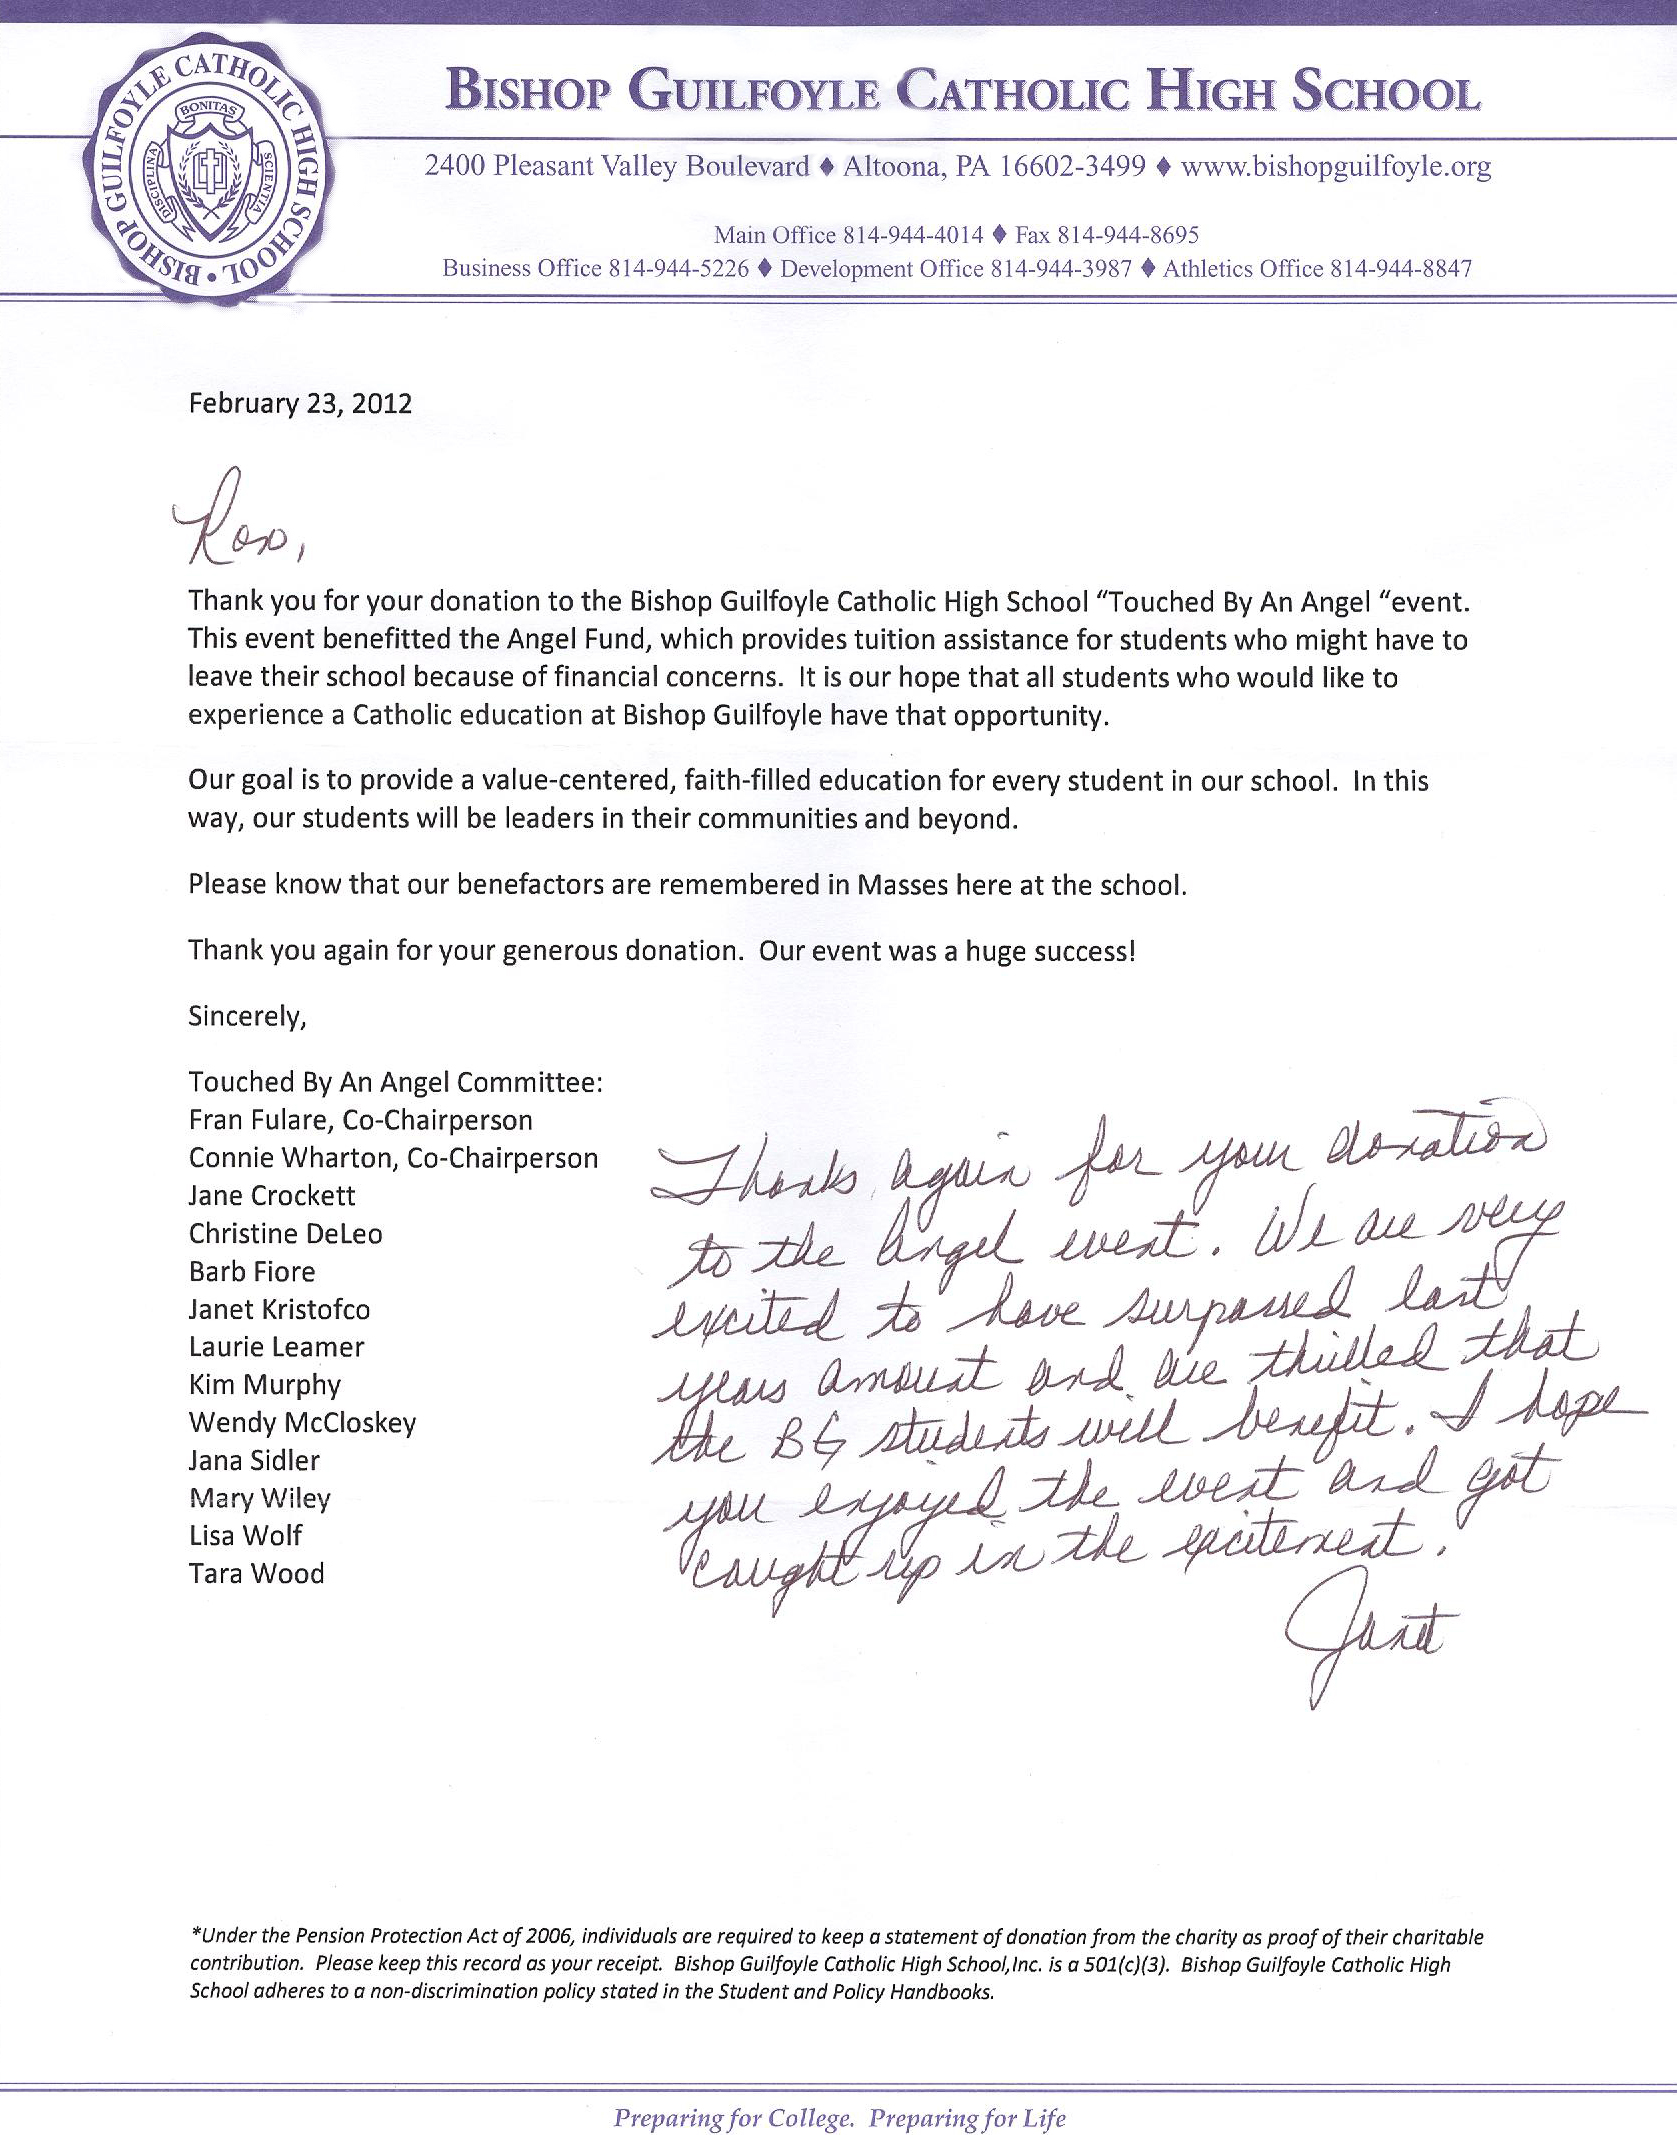 Professionals auto body community feedback thank you letter from bishop guilfoyle high school for our donation to their touched by an angel event altavistaventures Choice Image